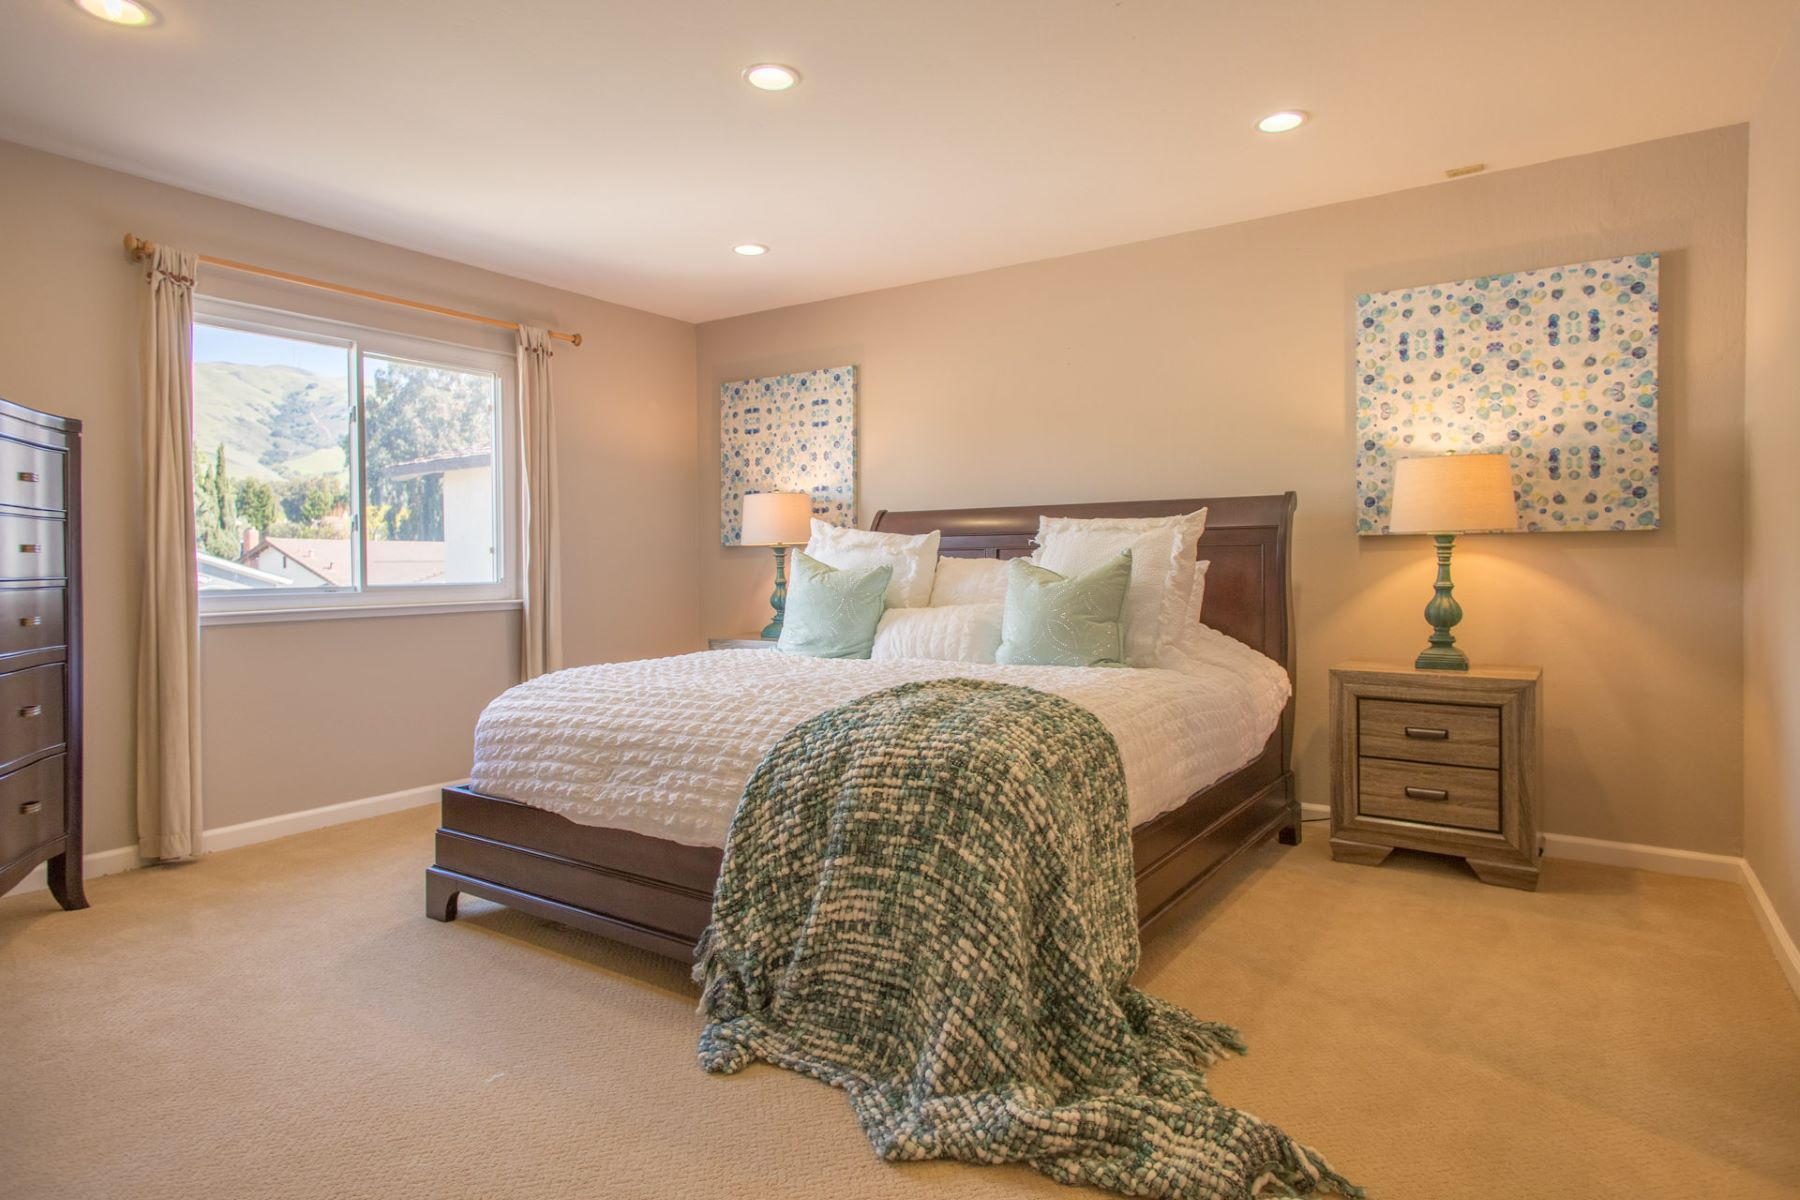 Additional photo for property listing at Gorgeous updated Weibel home within walking distance to Weibel Elementary 45555 Cheyenne Place Fremont, California 94539 United States